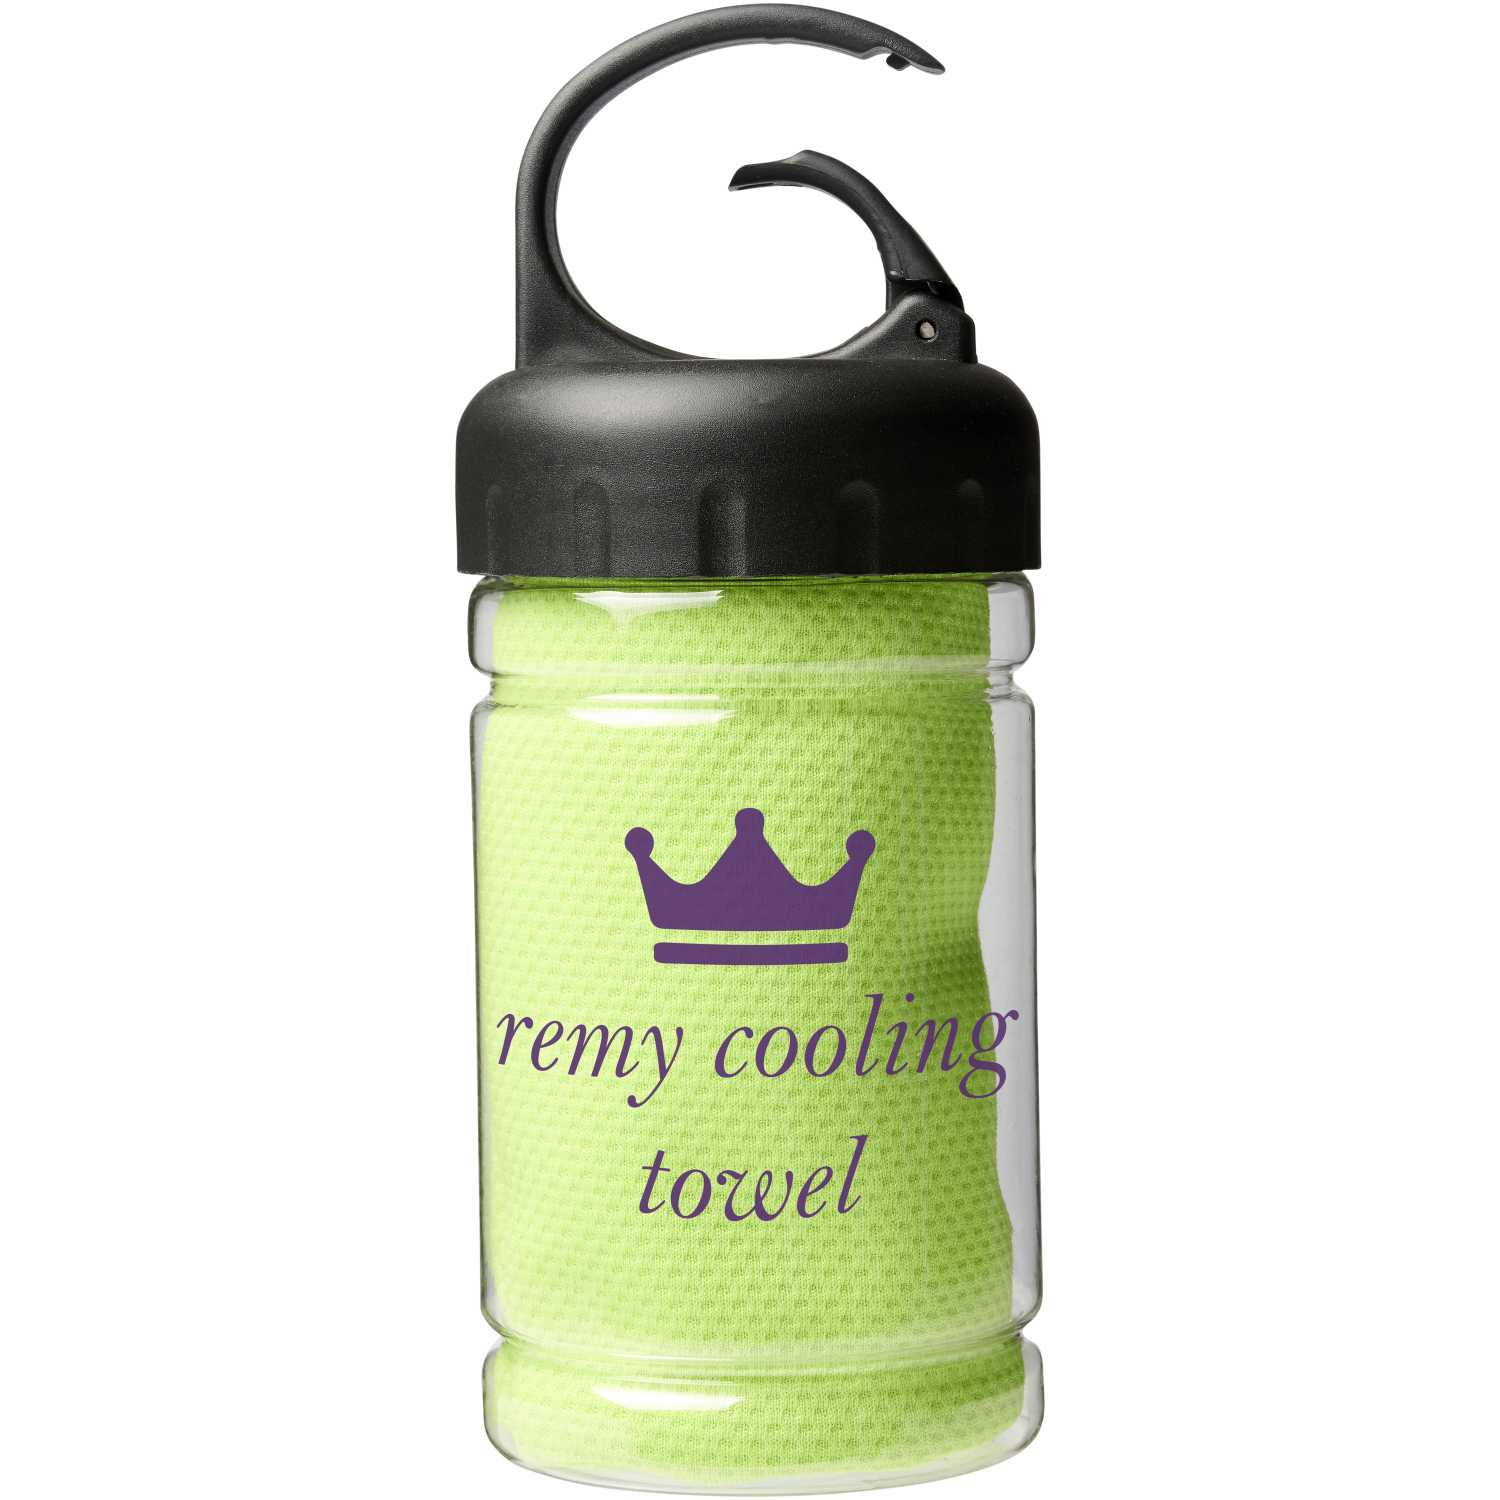 Remy Cooling Towel In PET Container